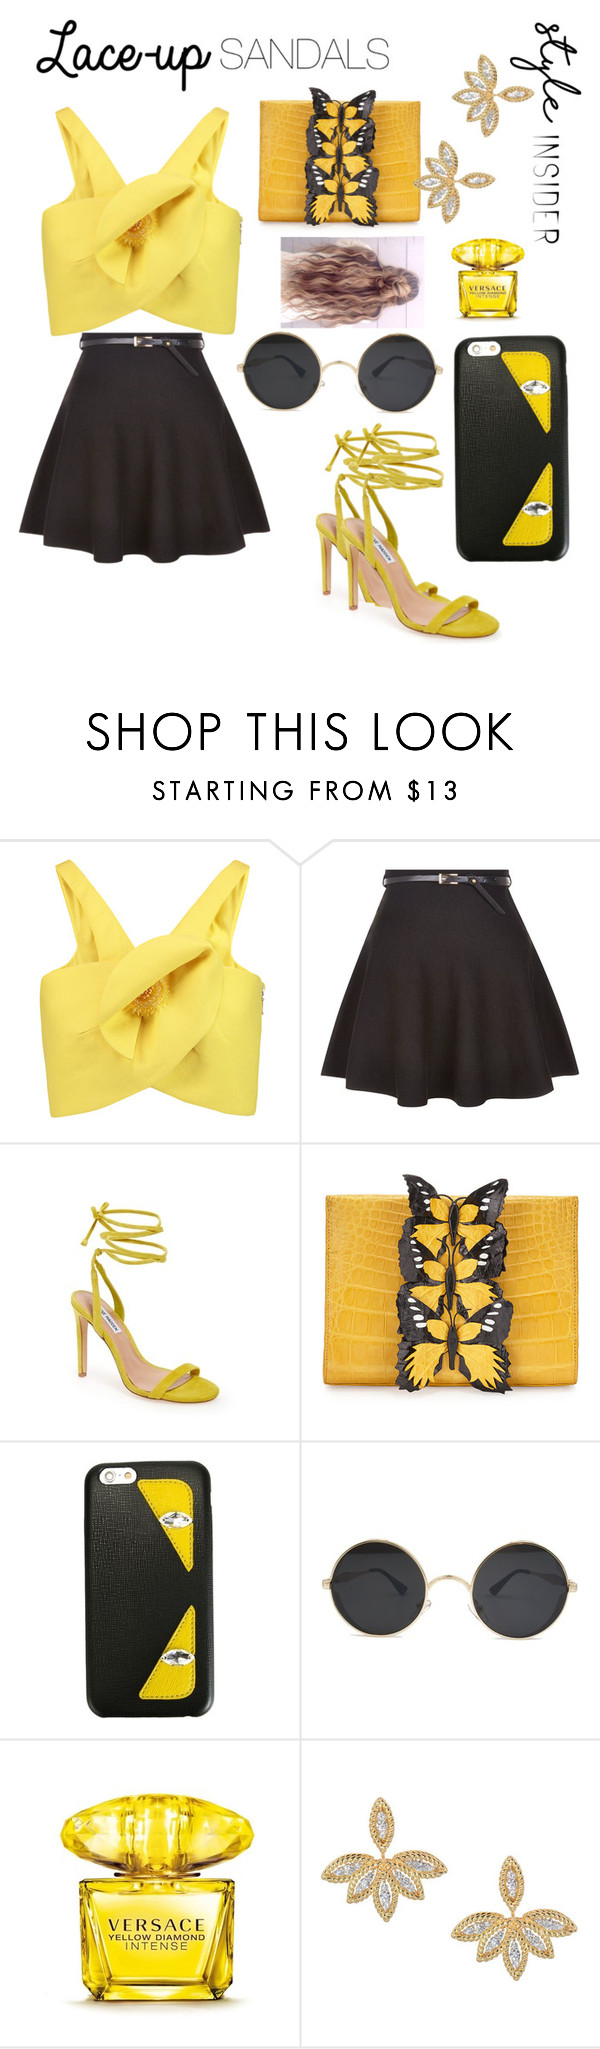 """laced up"" by adrislay ❤ liked on Polyvore featuring Delpozo, New Look, Steve Madden, Nancy Gonzalez, Fendi, Versace, Roberto Coin, contestentry, laceupsandals and PVStyleInsiderContest"